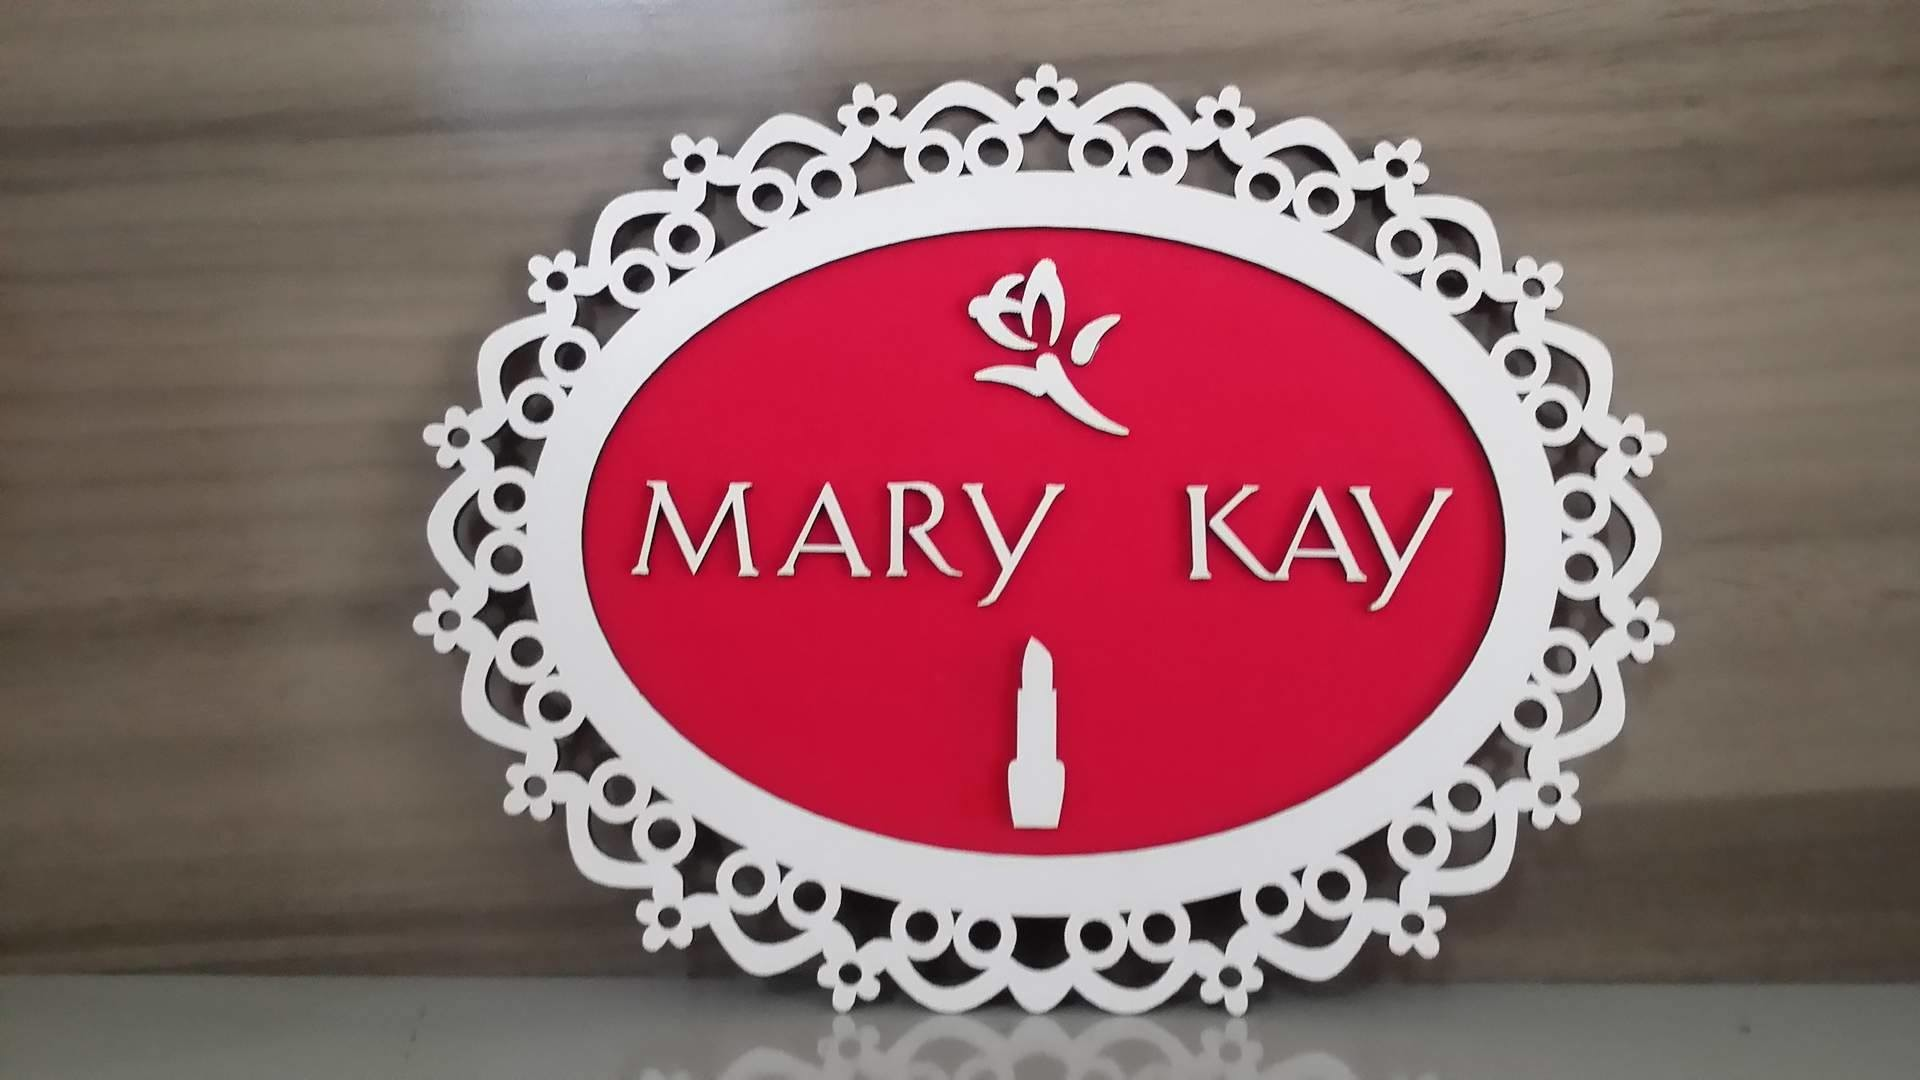 Inside Wallpaper Iphone X Mary Kay Wallpaper 69 Images